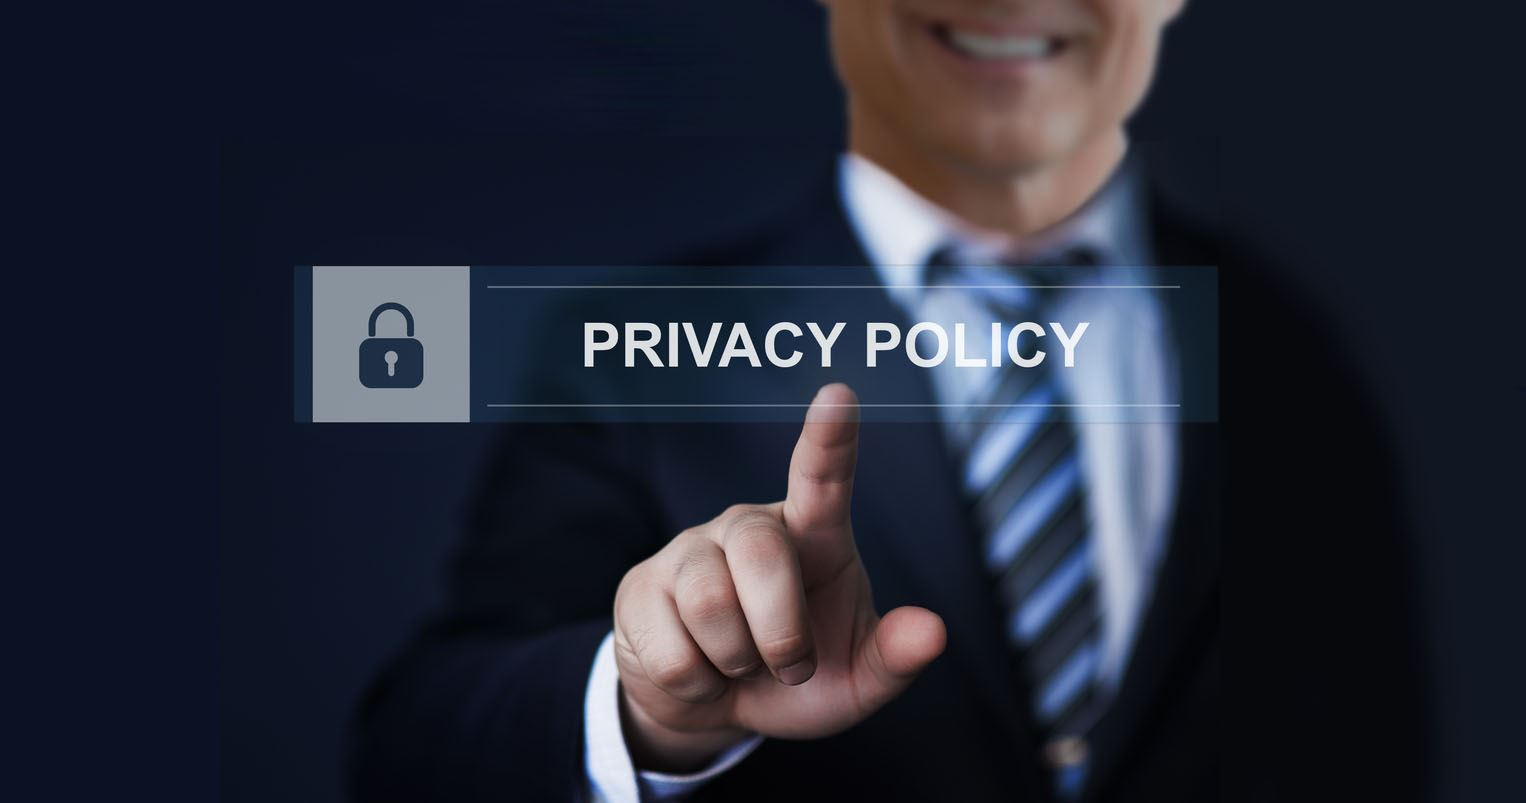 Consumer Privacy Policy Image